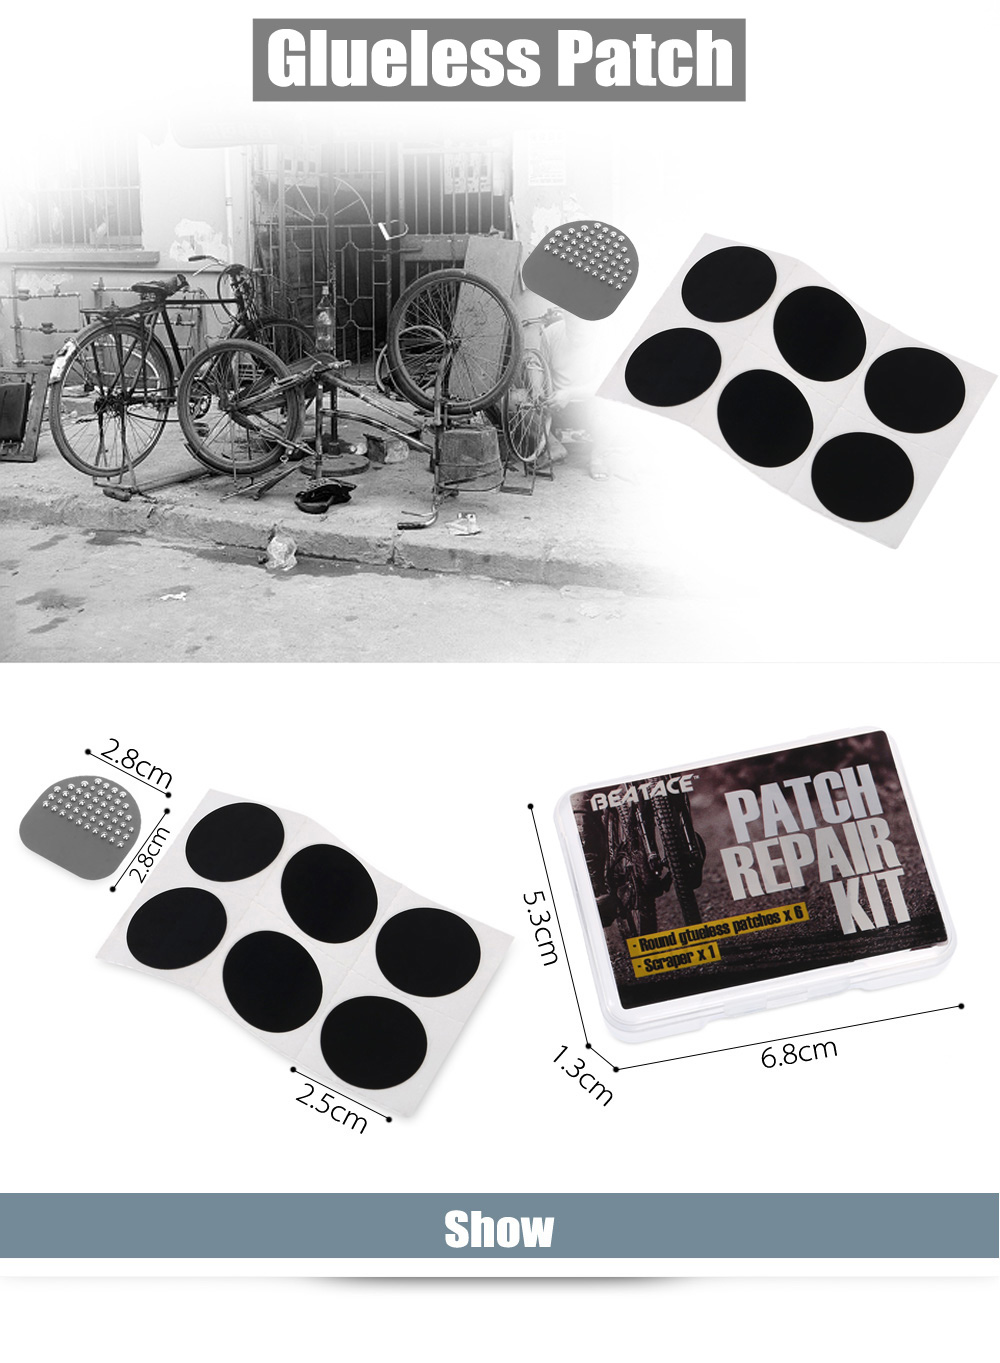 BEATACE BE80 - PT 6pcs Rubber Round Glueless Patch Bicycle Repairing Tool with Scraper / Box